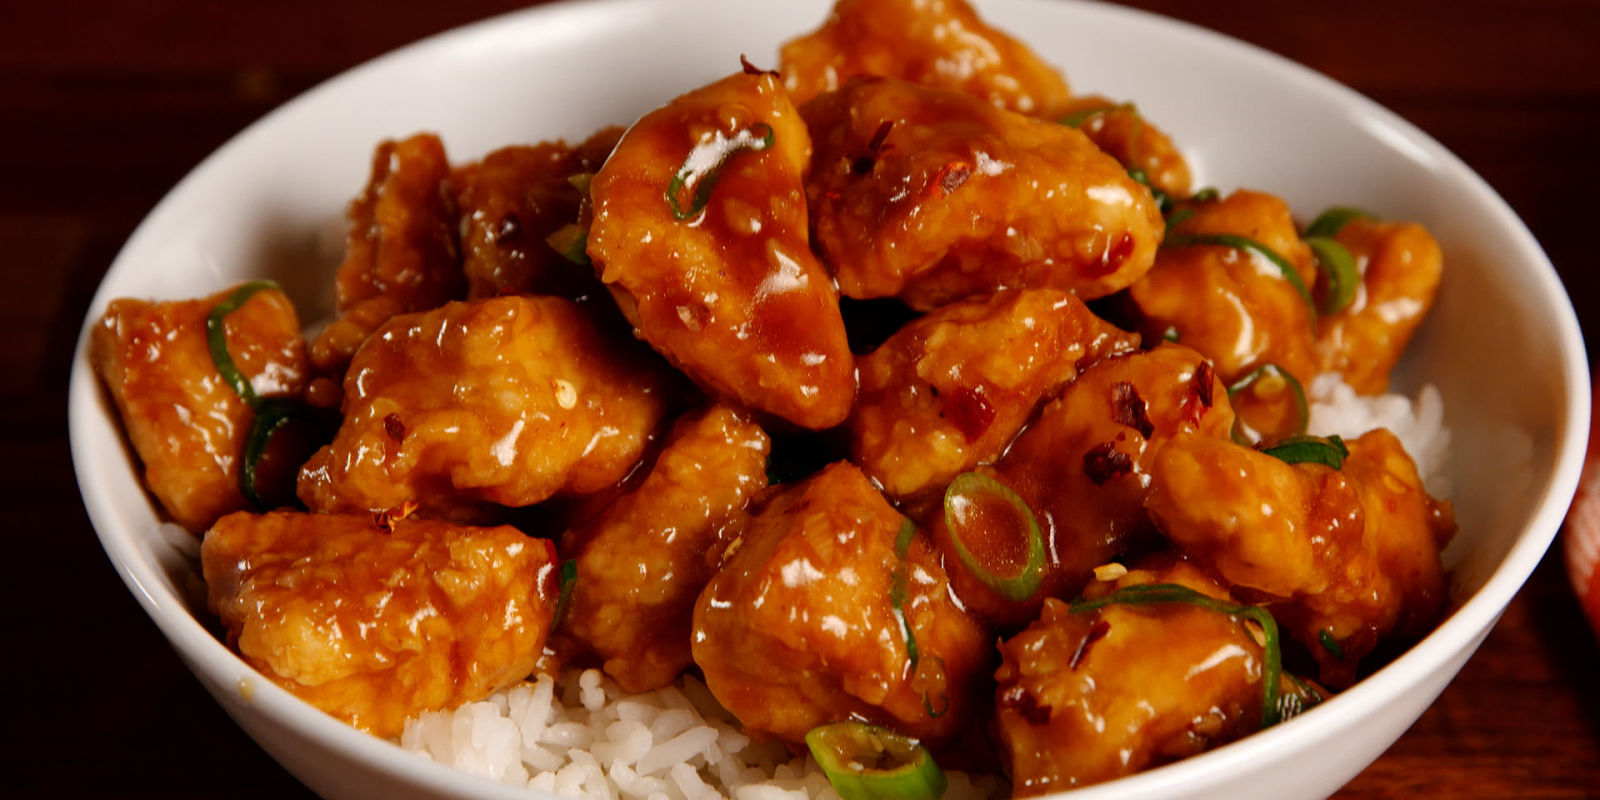 Best Sticky Orange Chicken Recipe - How to Make Sticky ...